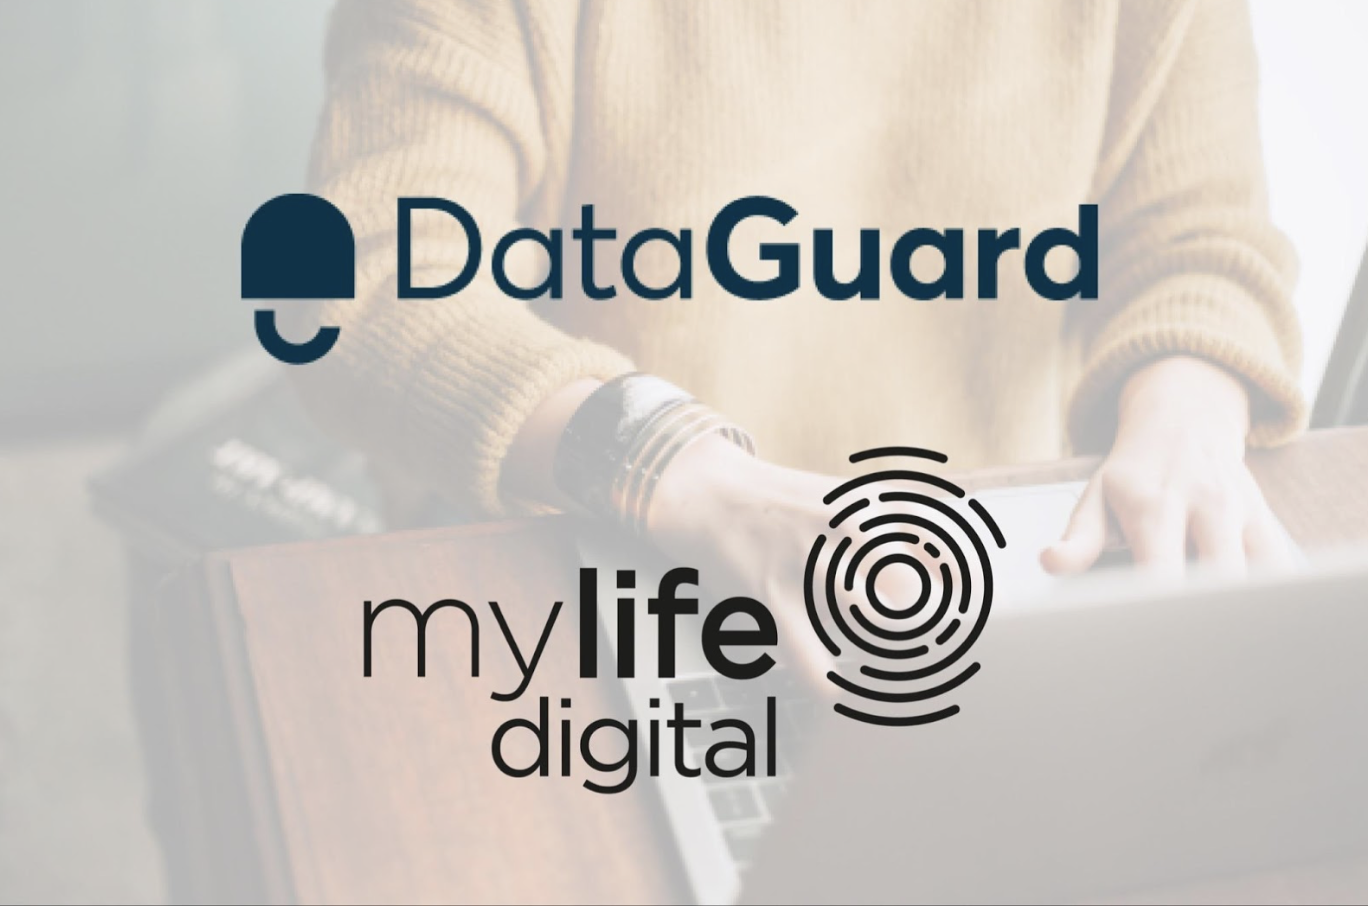 Inc & Co Announces Agreement to Sell MyLife Digital to Germany's DataGuard